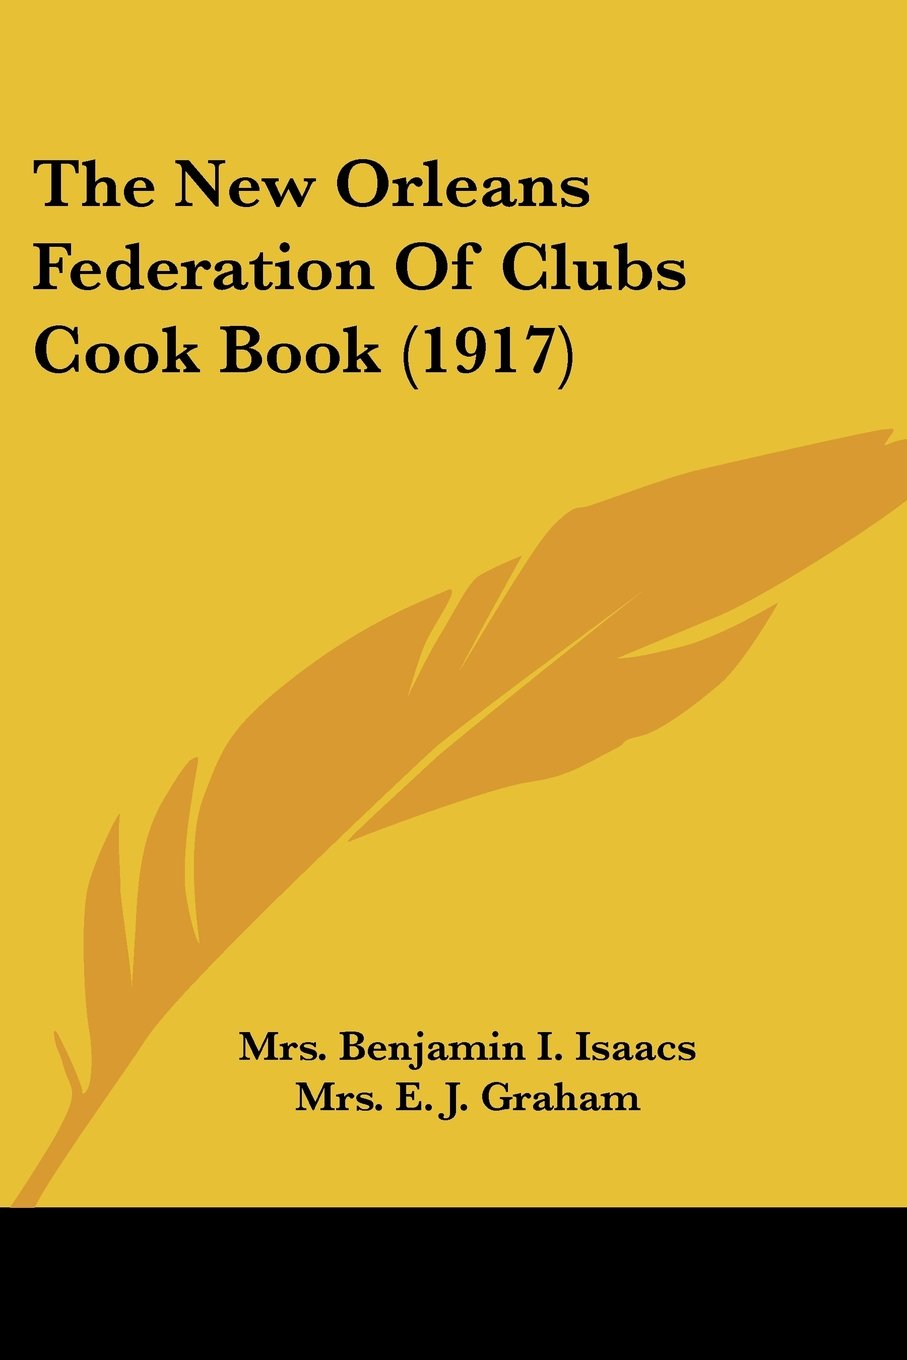 Download The New Orleans Federation Of Clubs Cook Book (1917) PDF